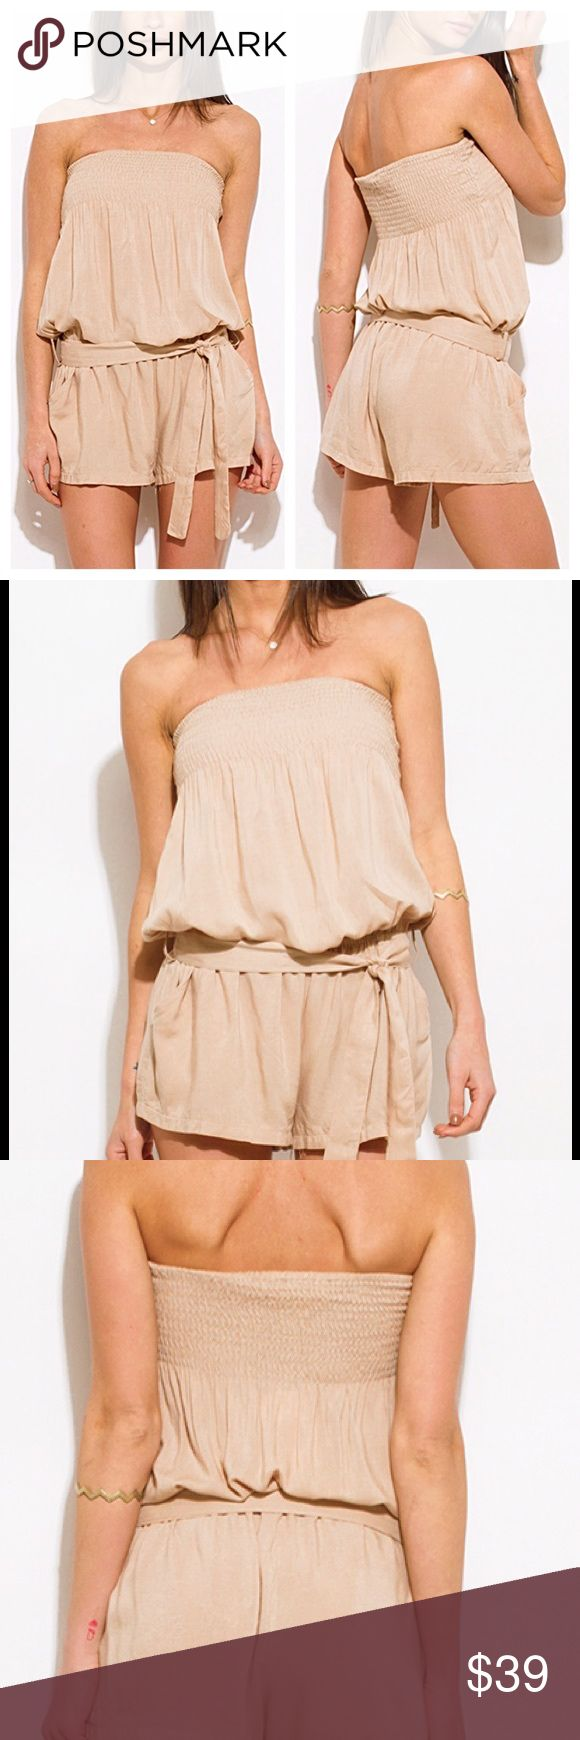 Khaki Beige Boho Romper 💋 *Coming Soon* Khaki Beige Boho Romper. Pocketed Playsuit Jumpsuit. 100% Rayon. New, direct from maker. Light weight. Great for Birthday, Anniversary, Gift, Present, Vacation, Cruise, Wedding, Pool, Cover Up, Date, Night, Spring, Summer, Sexy, Work, Casual, Boho, lounging, Daytime, Party. Pants Jumpsuits & Rompers